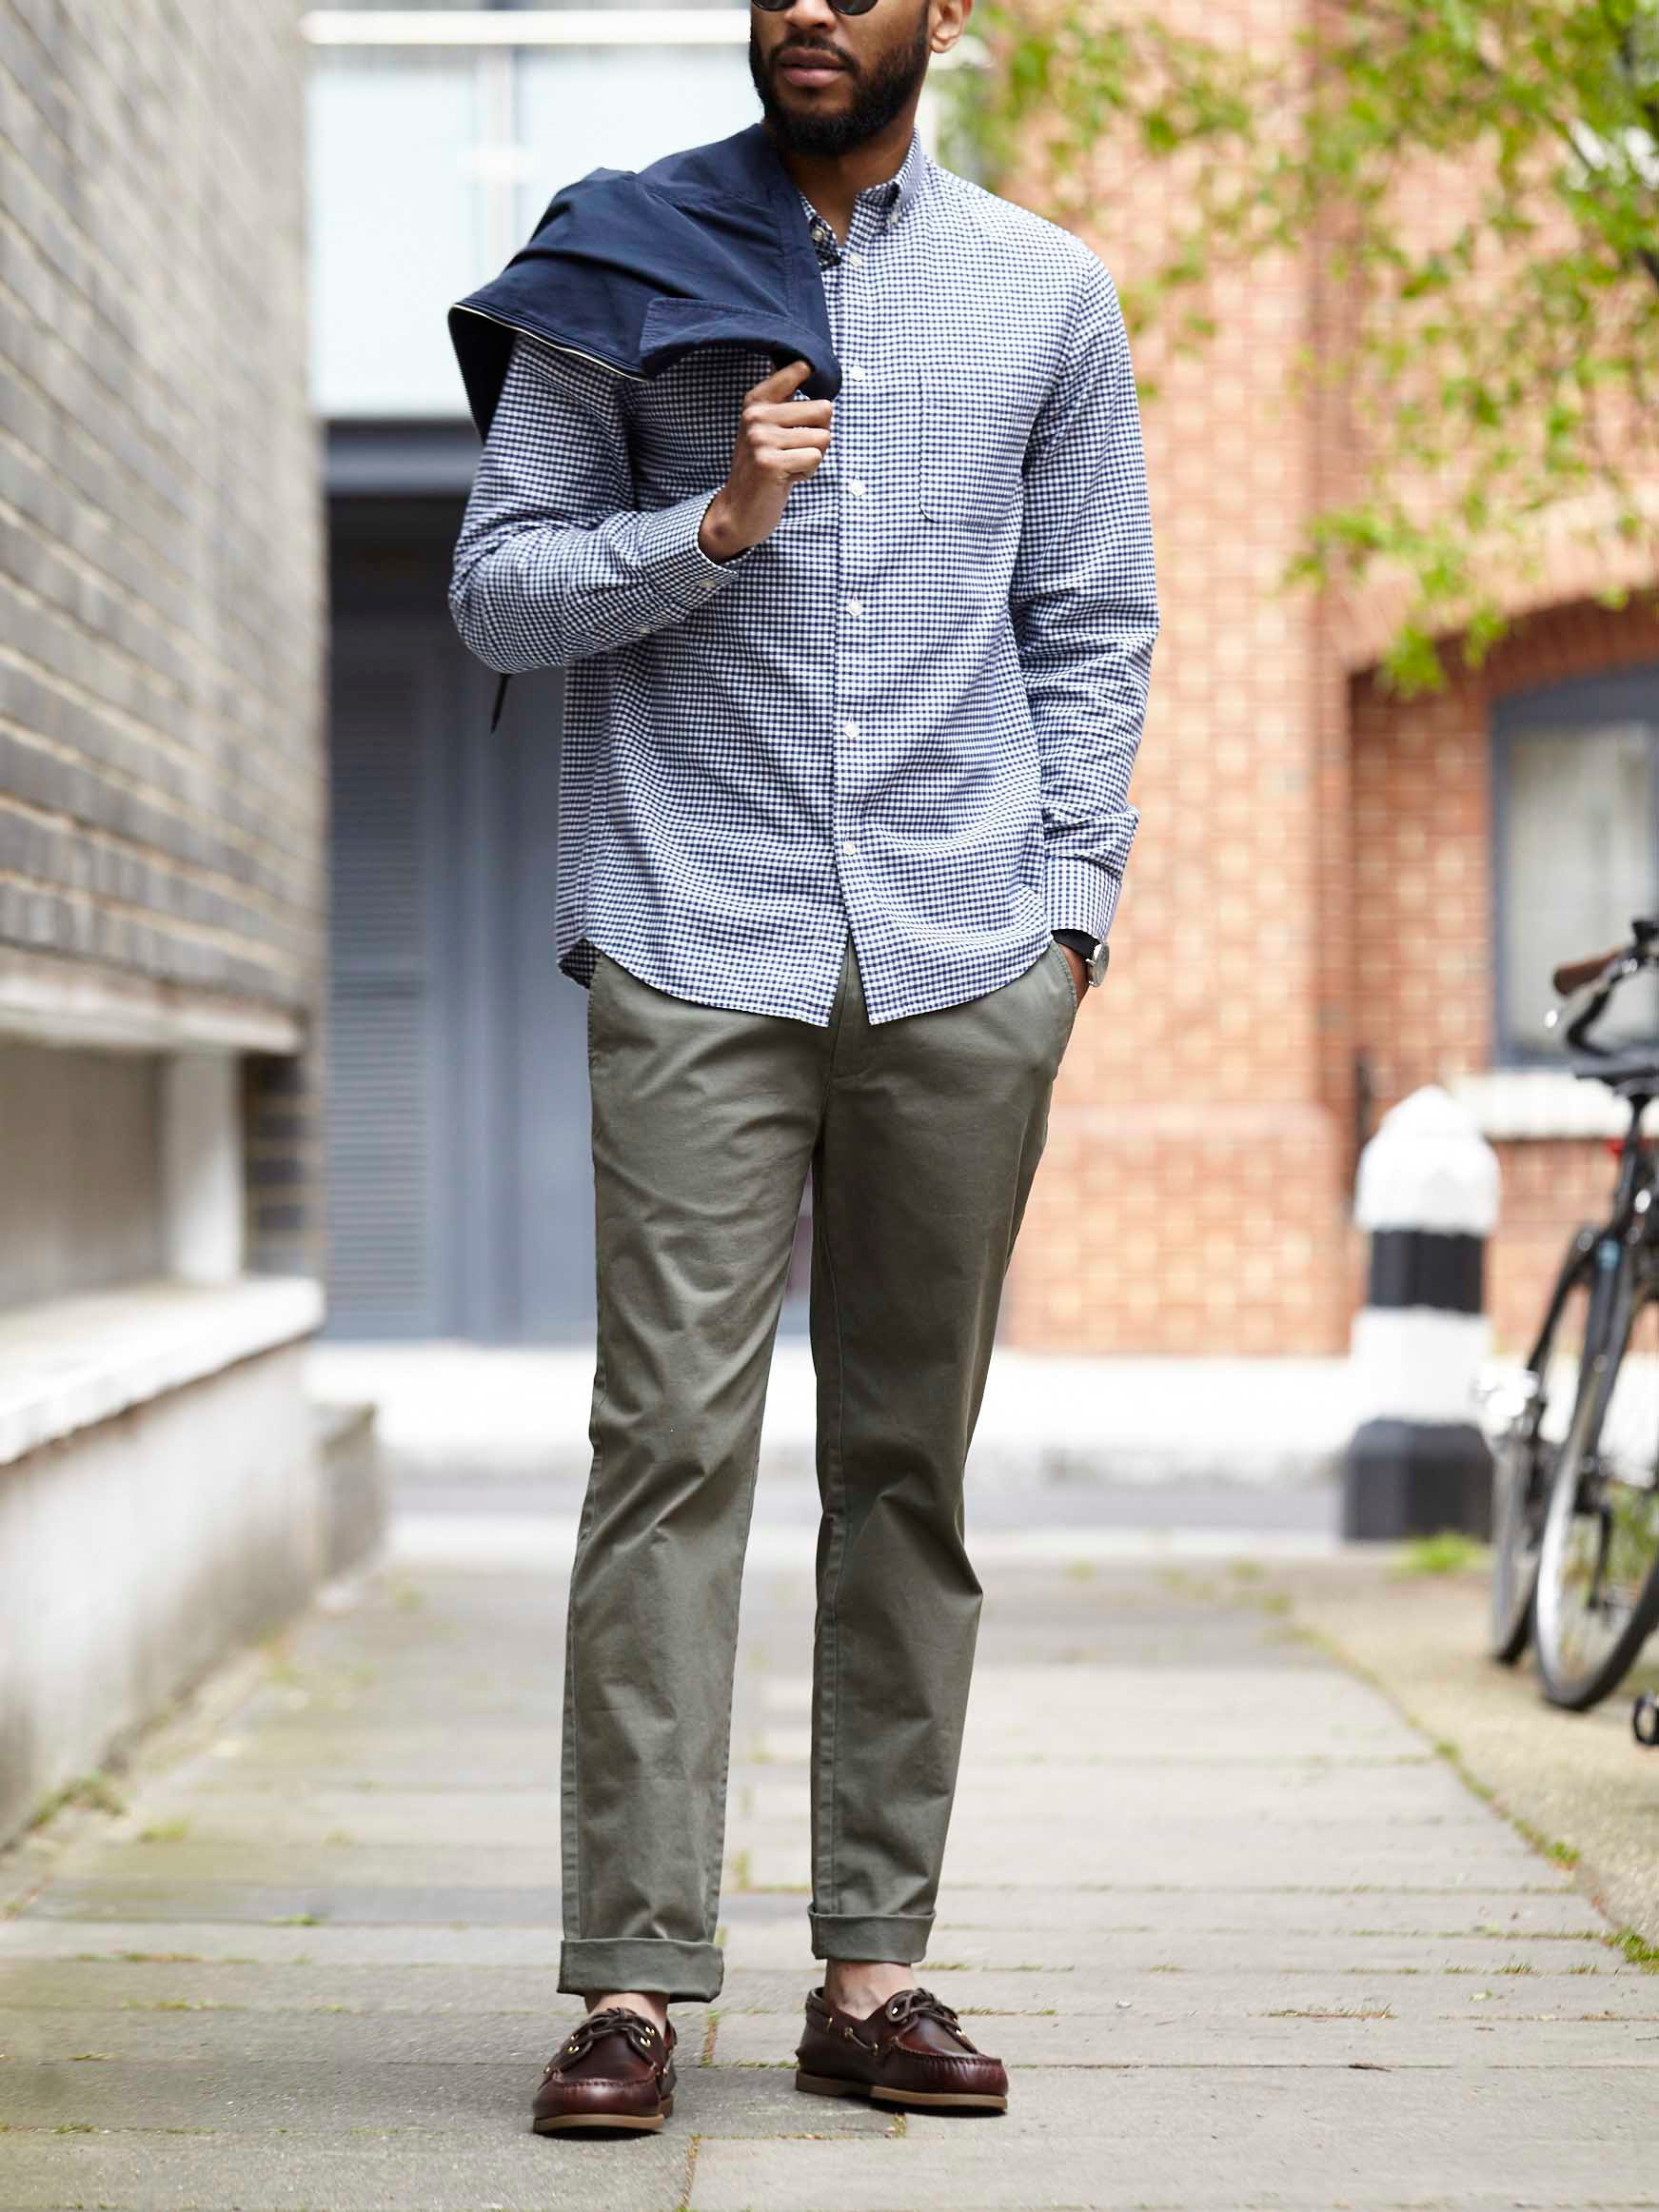 Men's outfit idea for 2021 with harrington jacket, micro plaid casual shirt, colored chinos, canvas strap watch, boat shoes. Suitable for spring, summer and fall.